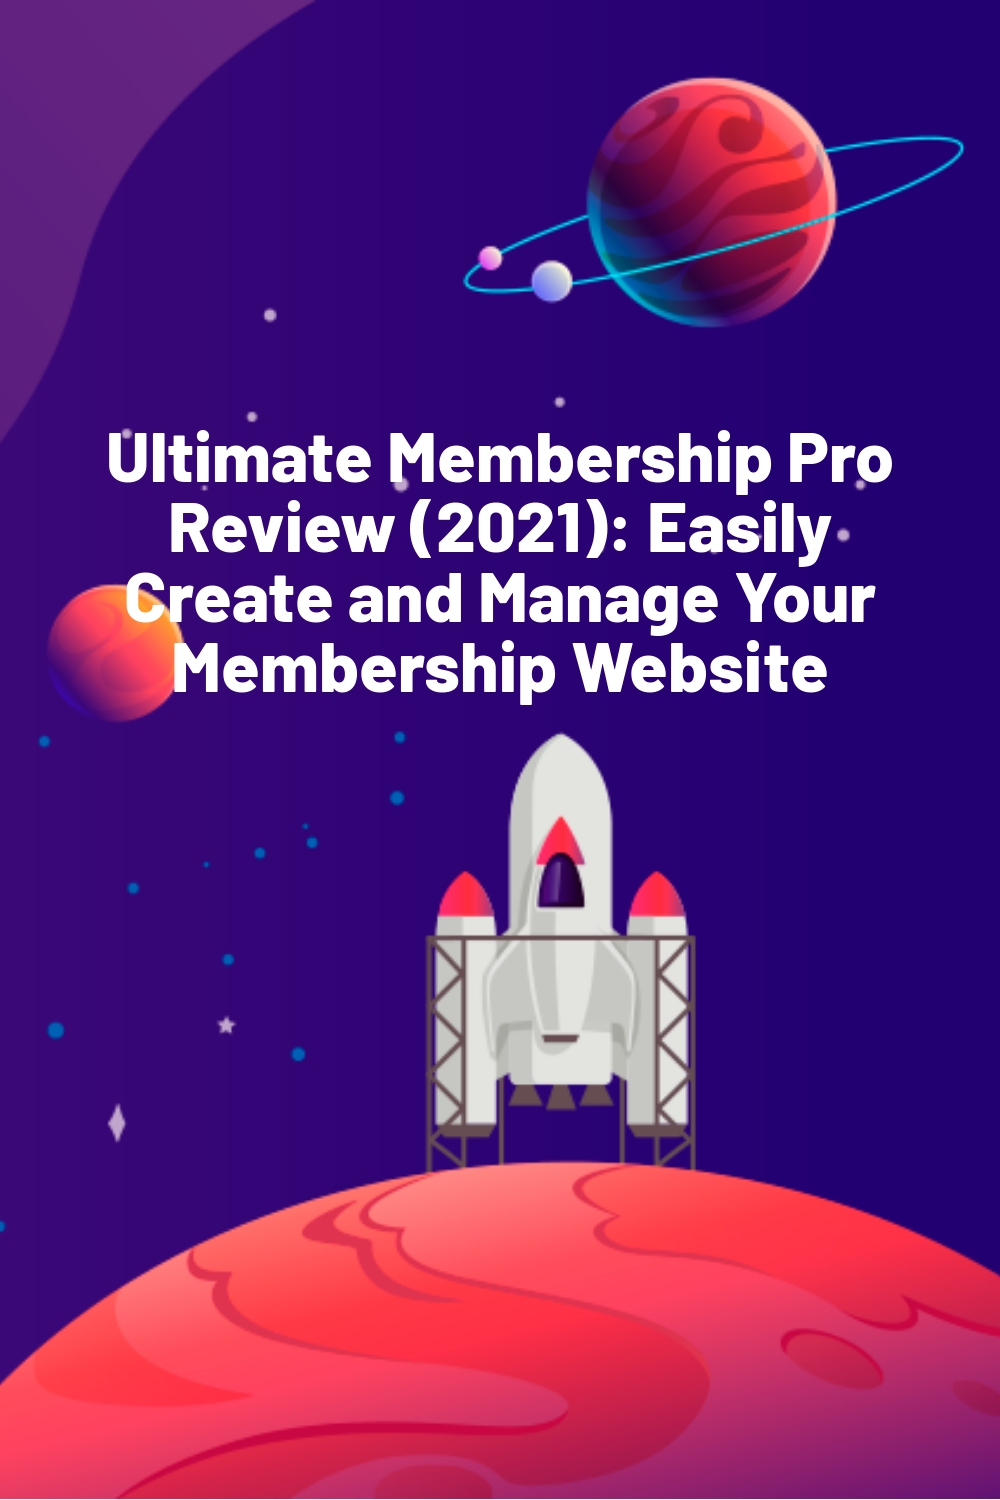 Ultimate Membership Pro Review (2021): Easily Create and Manage Your Membership Website